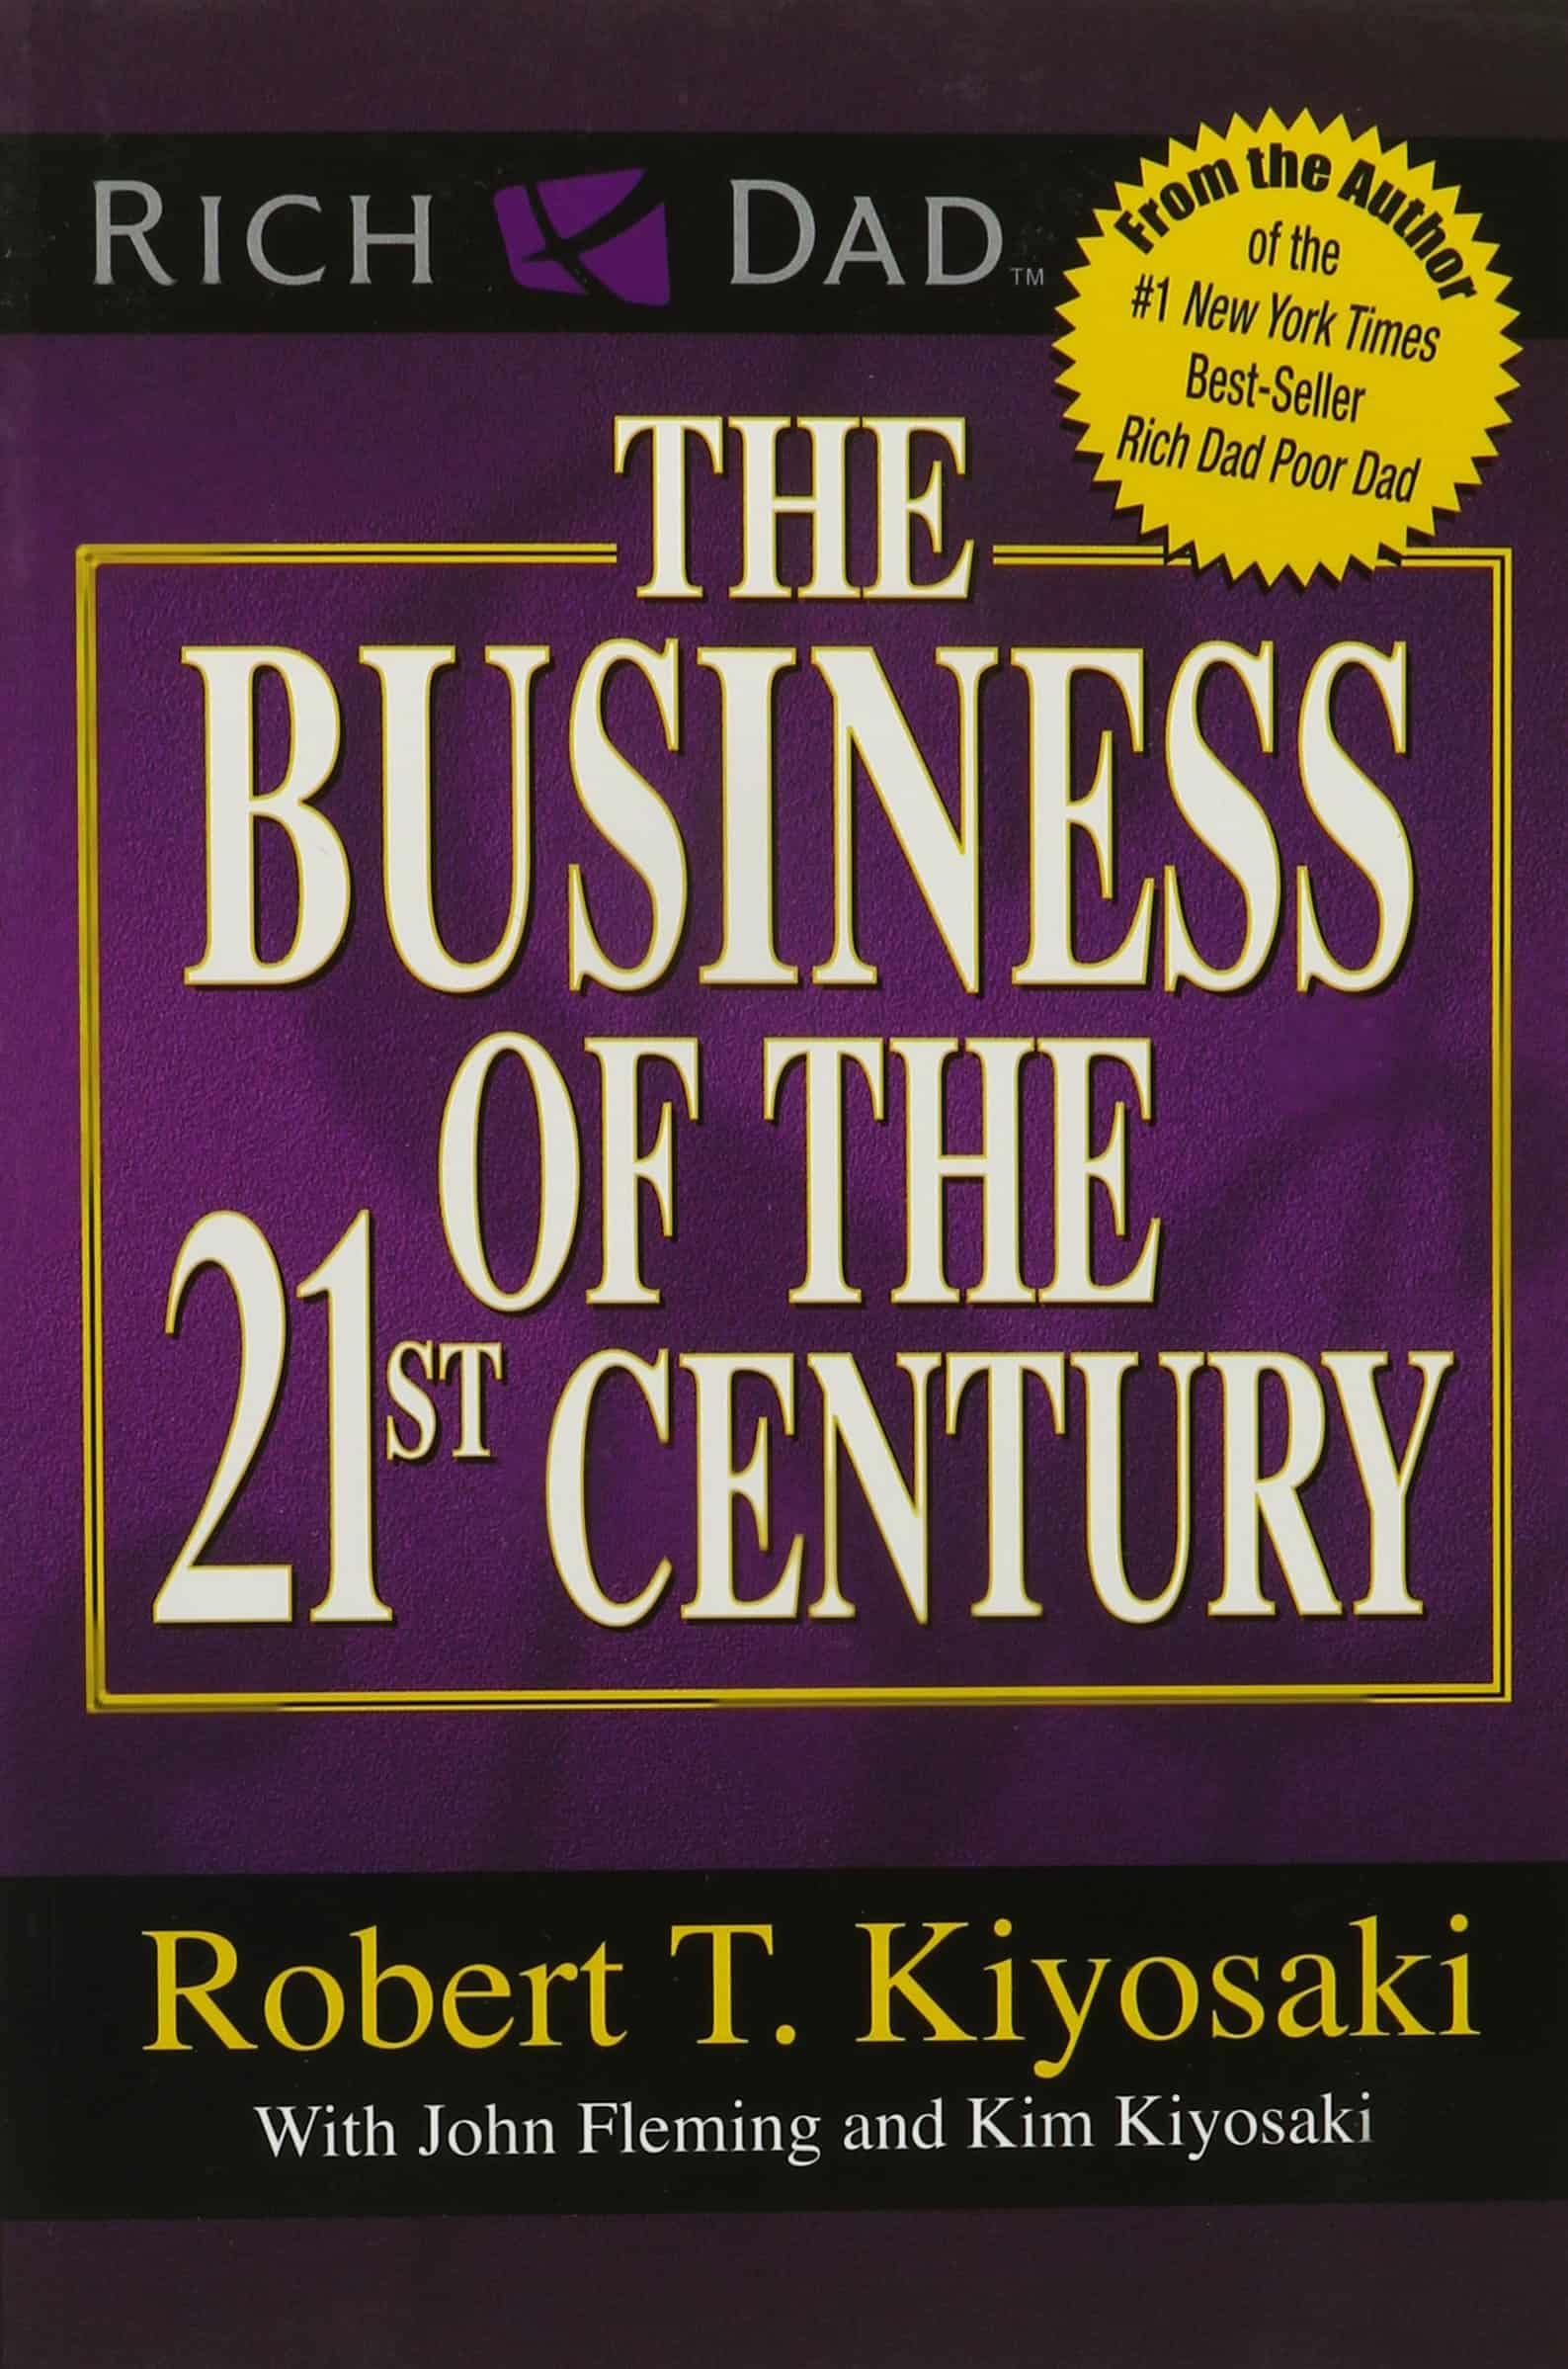 The Business of the 21st Century PDF Book by Robert T. Kiyosaki Free download